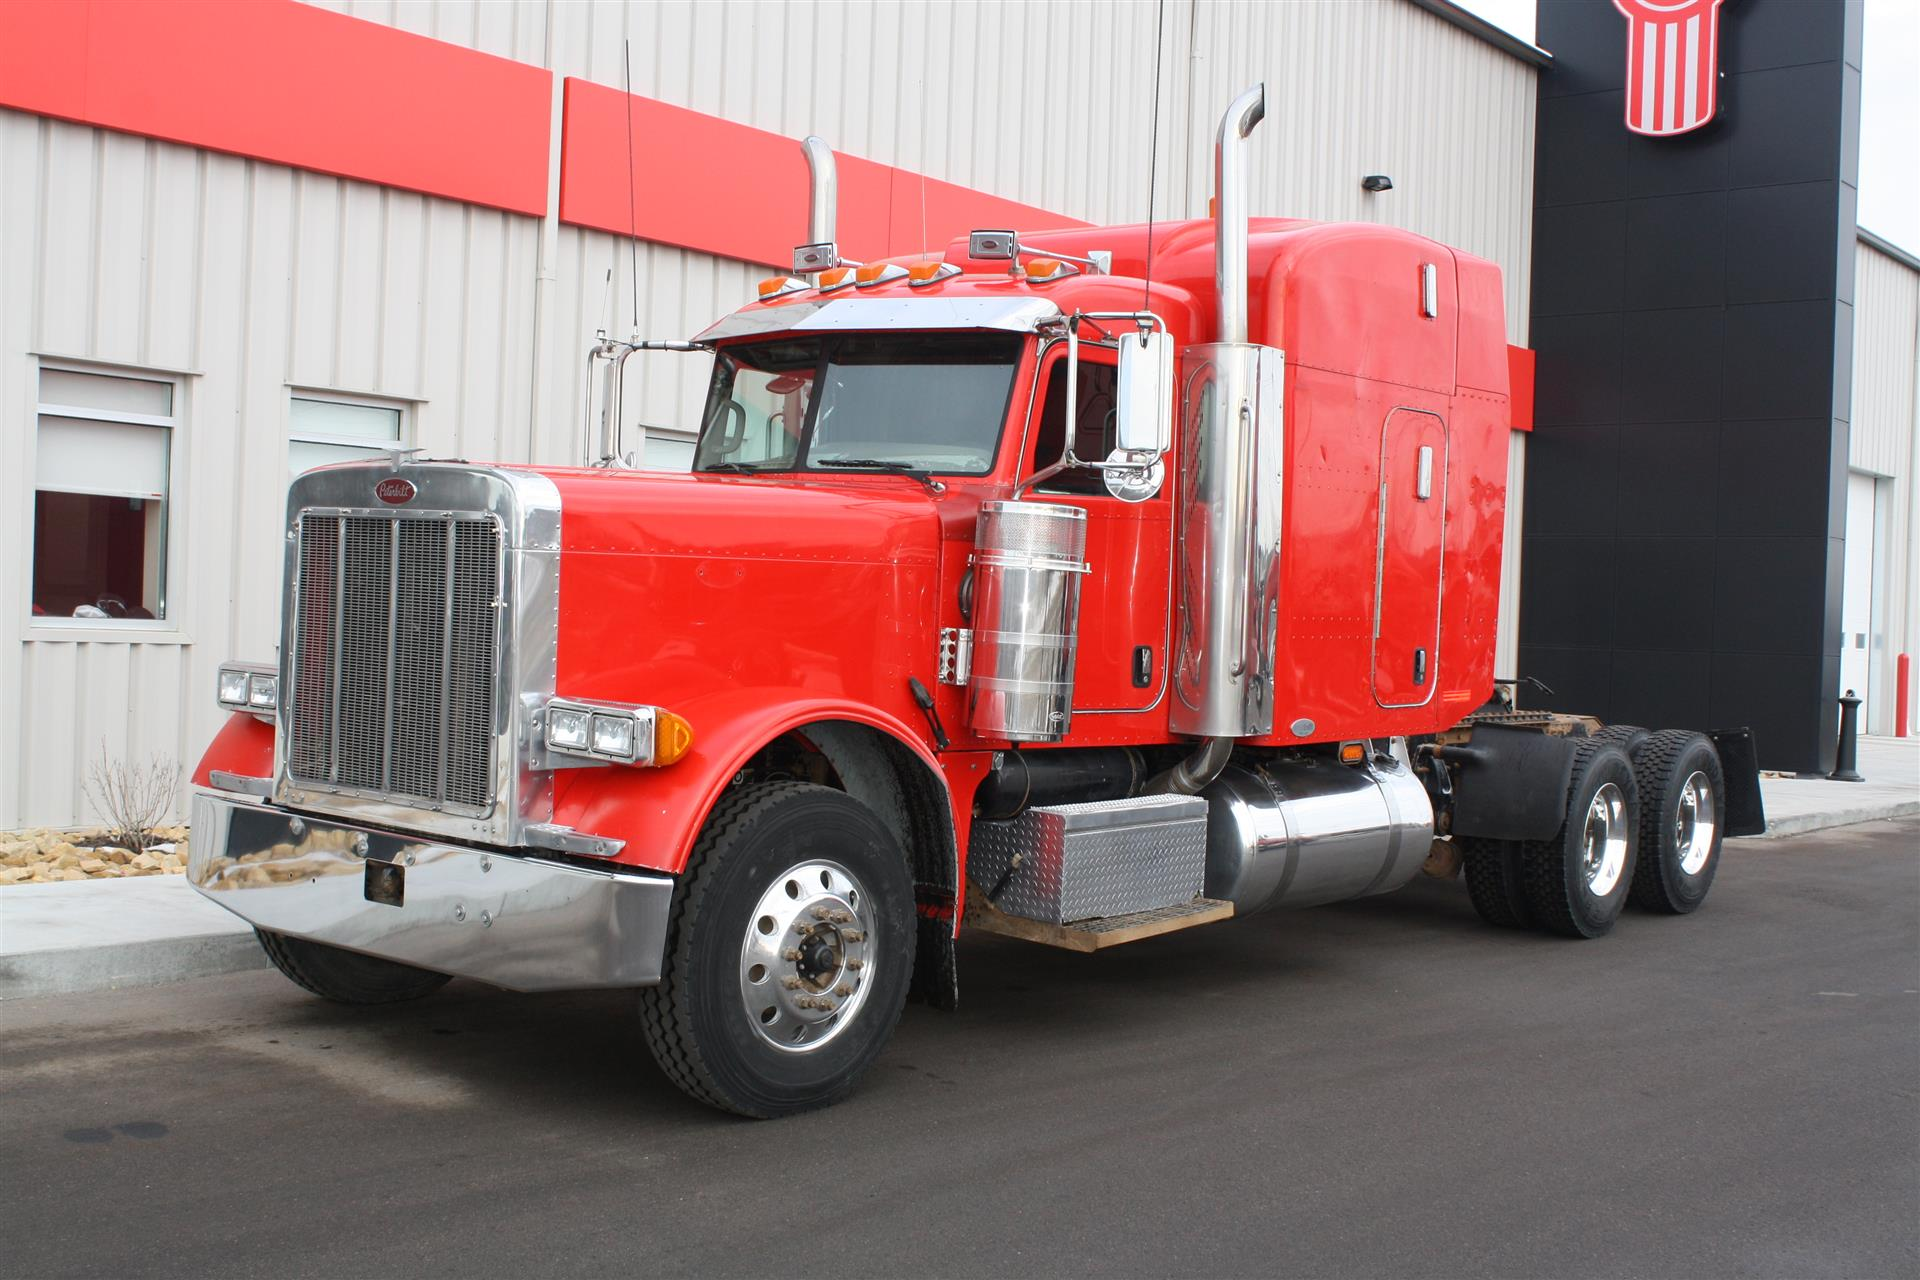 Peterbilt 379 Trucks For Sale 1 Searched Truck